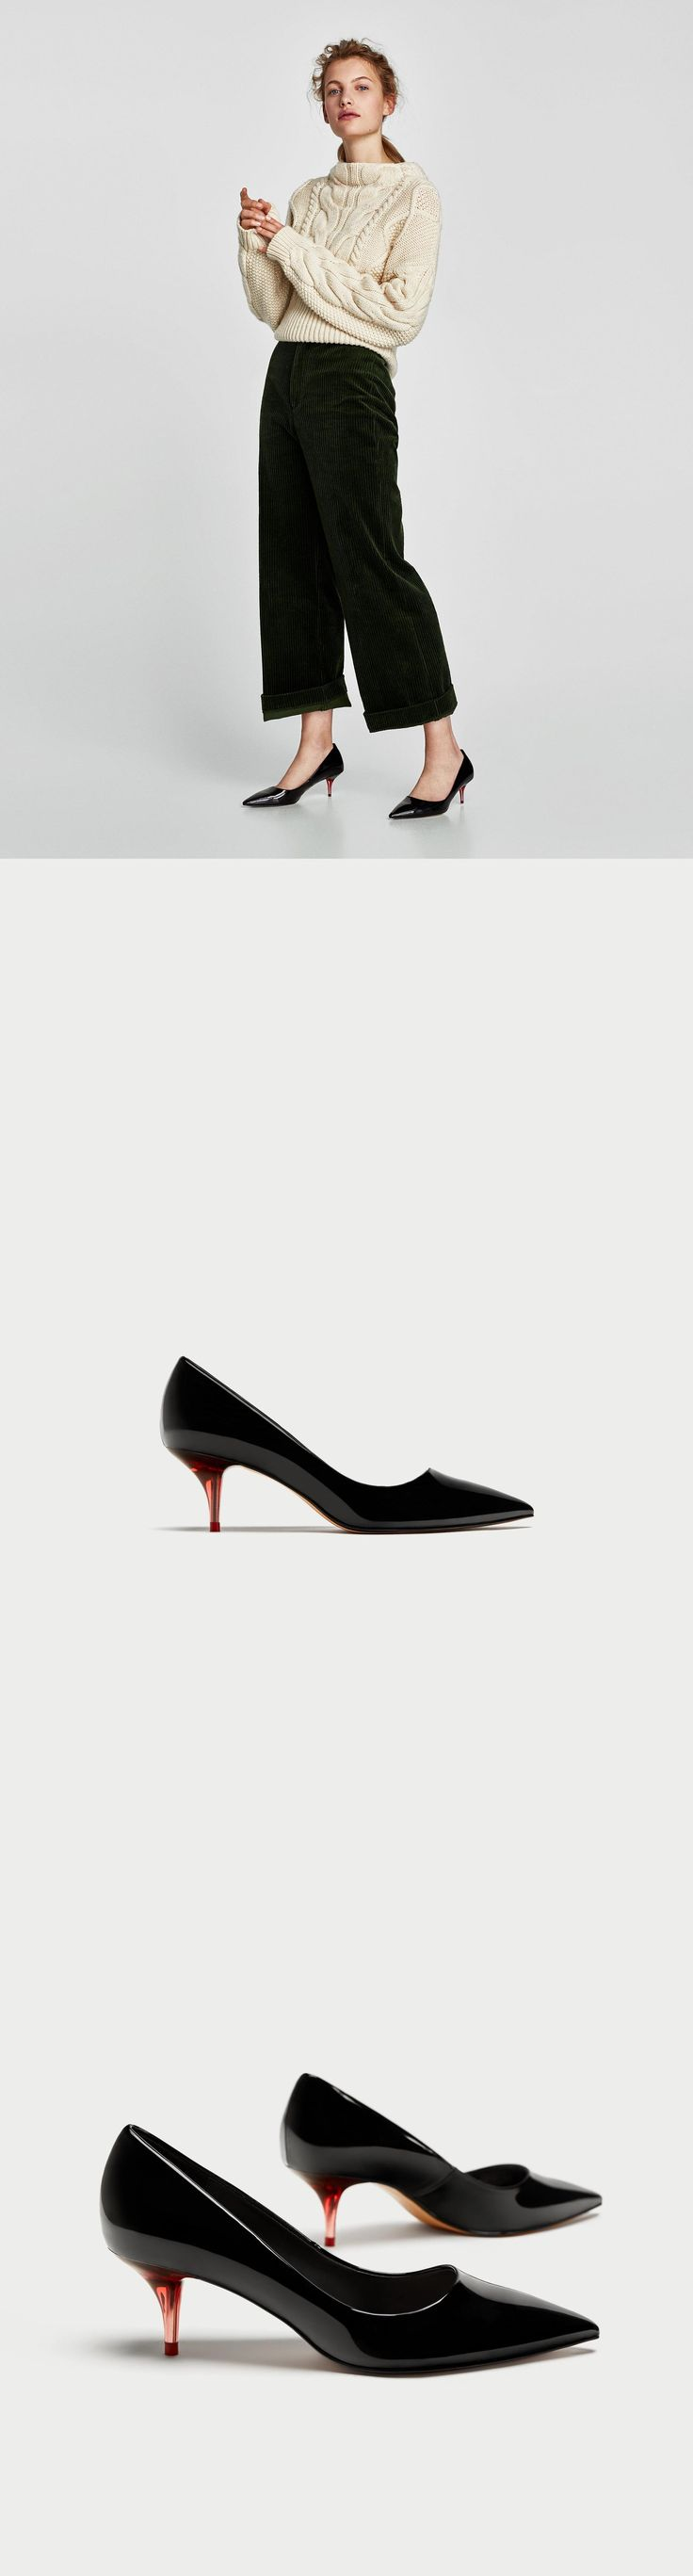 Transparent Mid-Heel Court Shoes // 49.90 USD // Zara // Black mid-heel shoes. Contrasting red ombré-effect methacrylate heels. Pointed toes. Heel height of 5.5 cm. / 2.1″